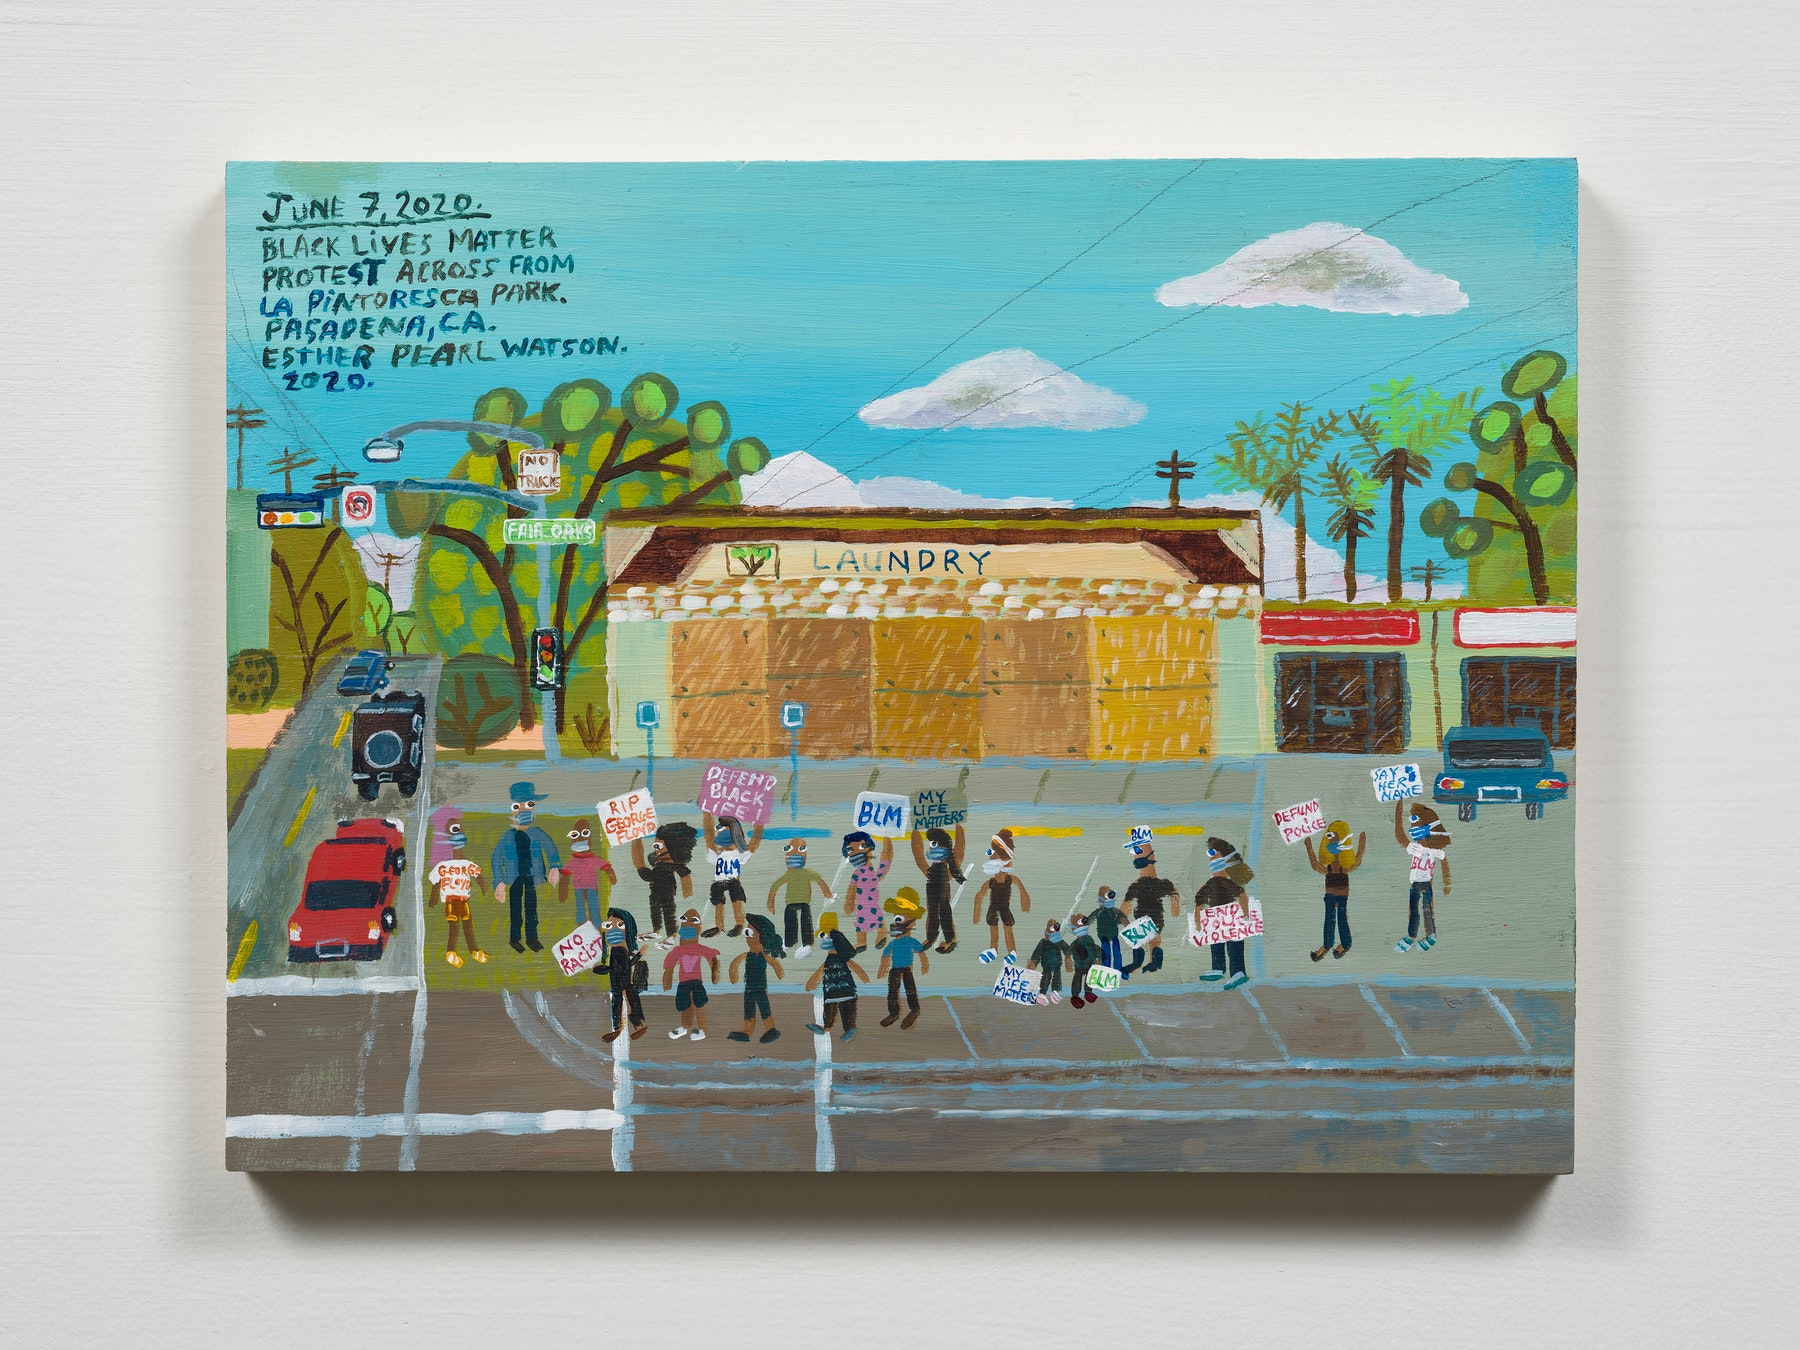 """Esther Pearl Watson """"June 7, La Pintoresca Park Protest,"""" 2020 Acrylic with pencil on panel 8 x 10"""" [HxW] (20.32 x 25.4 cm) Inventory #EPW295 Courtesy of the artist and Vielmetter Los Angeles Photo credit: Jeff Mclane"""